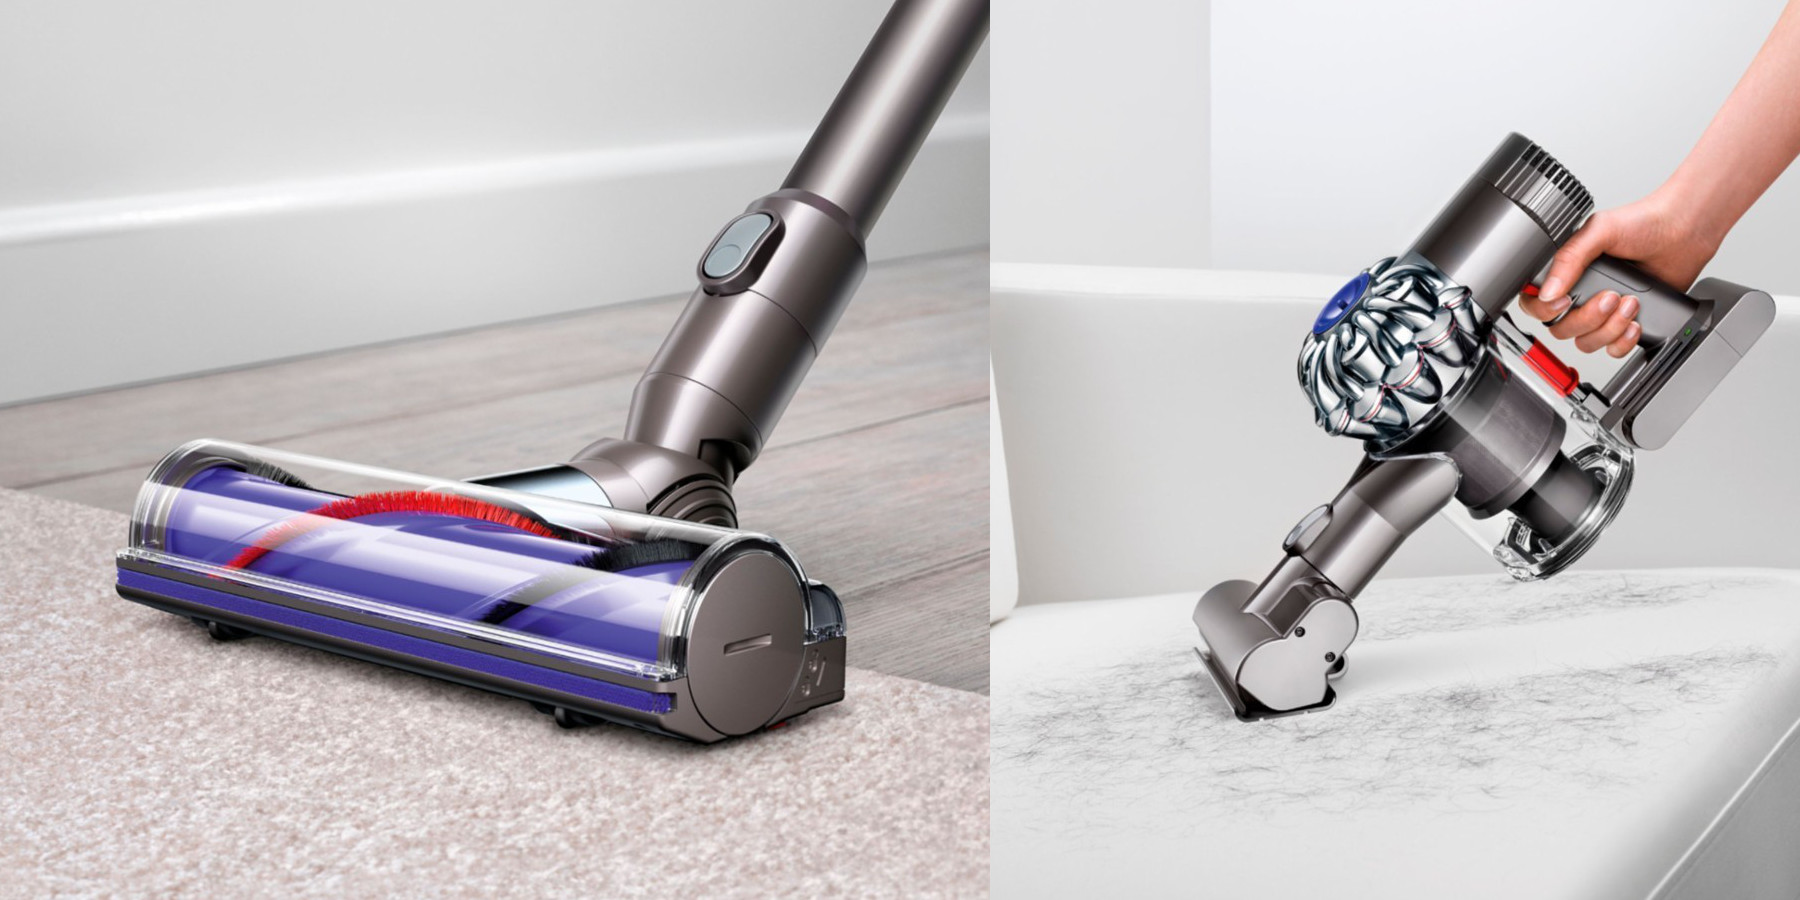 Image of: Attachments Dyson V6 Animal Cordless Stick Vac Drops To 200 For Today Only reg 280 9to5toys Dyson V6 Animal Cordless Stick Vac Drops To 200 For Today Only reg